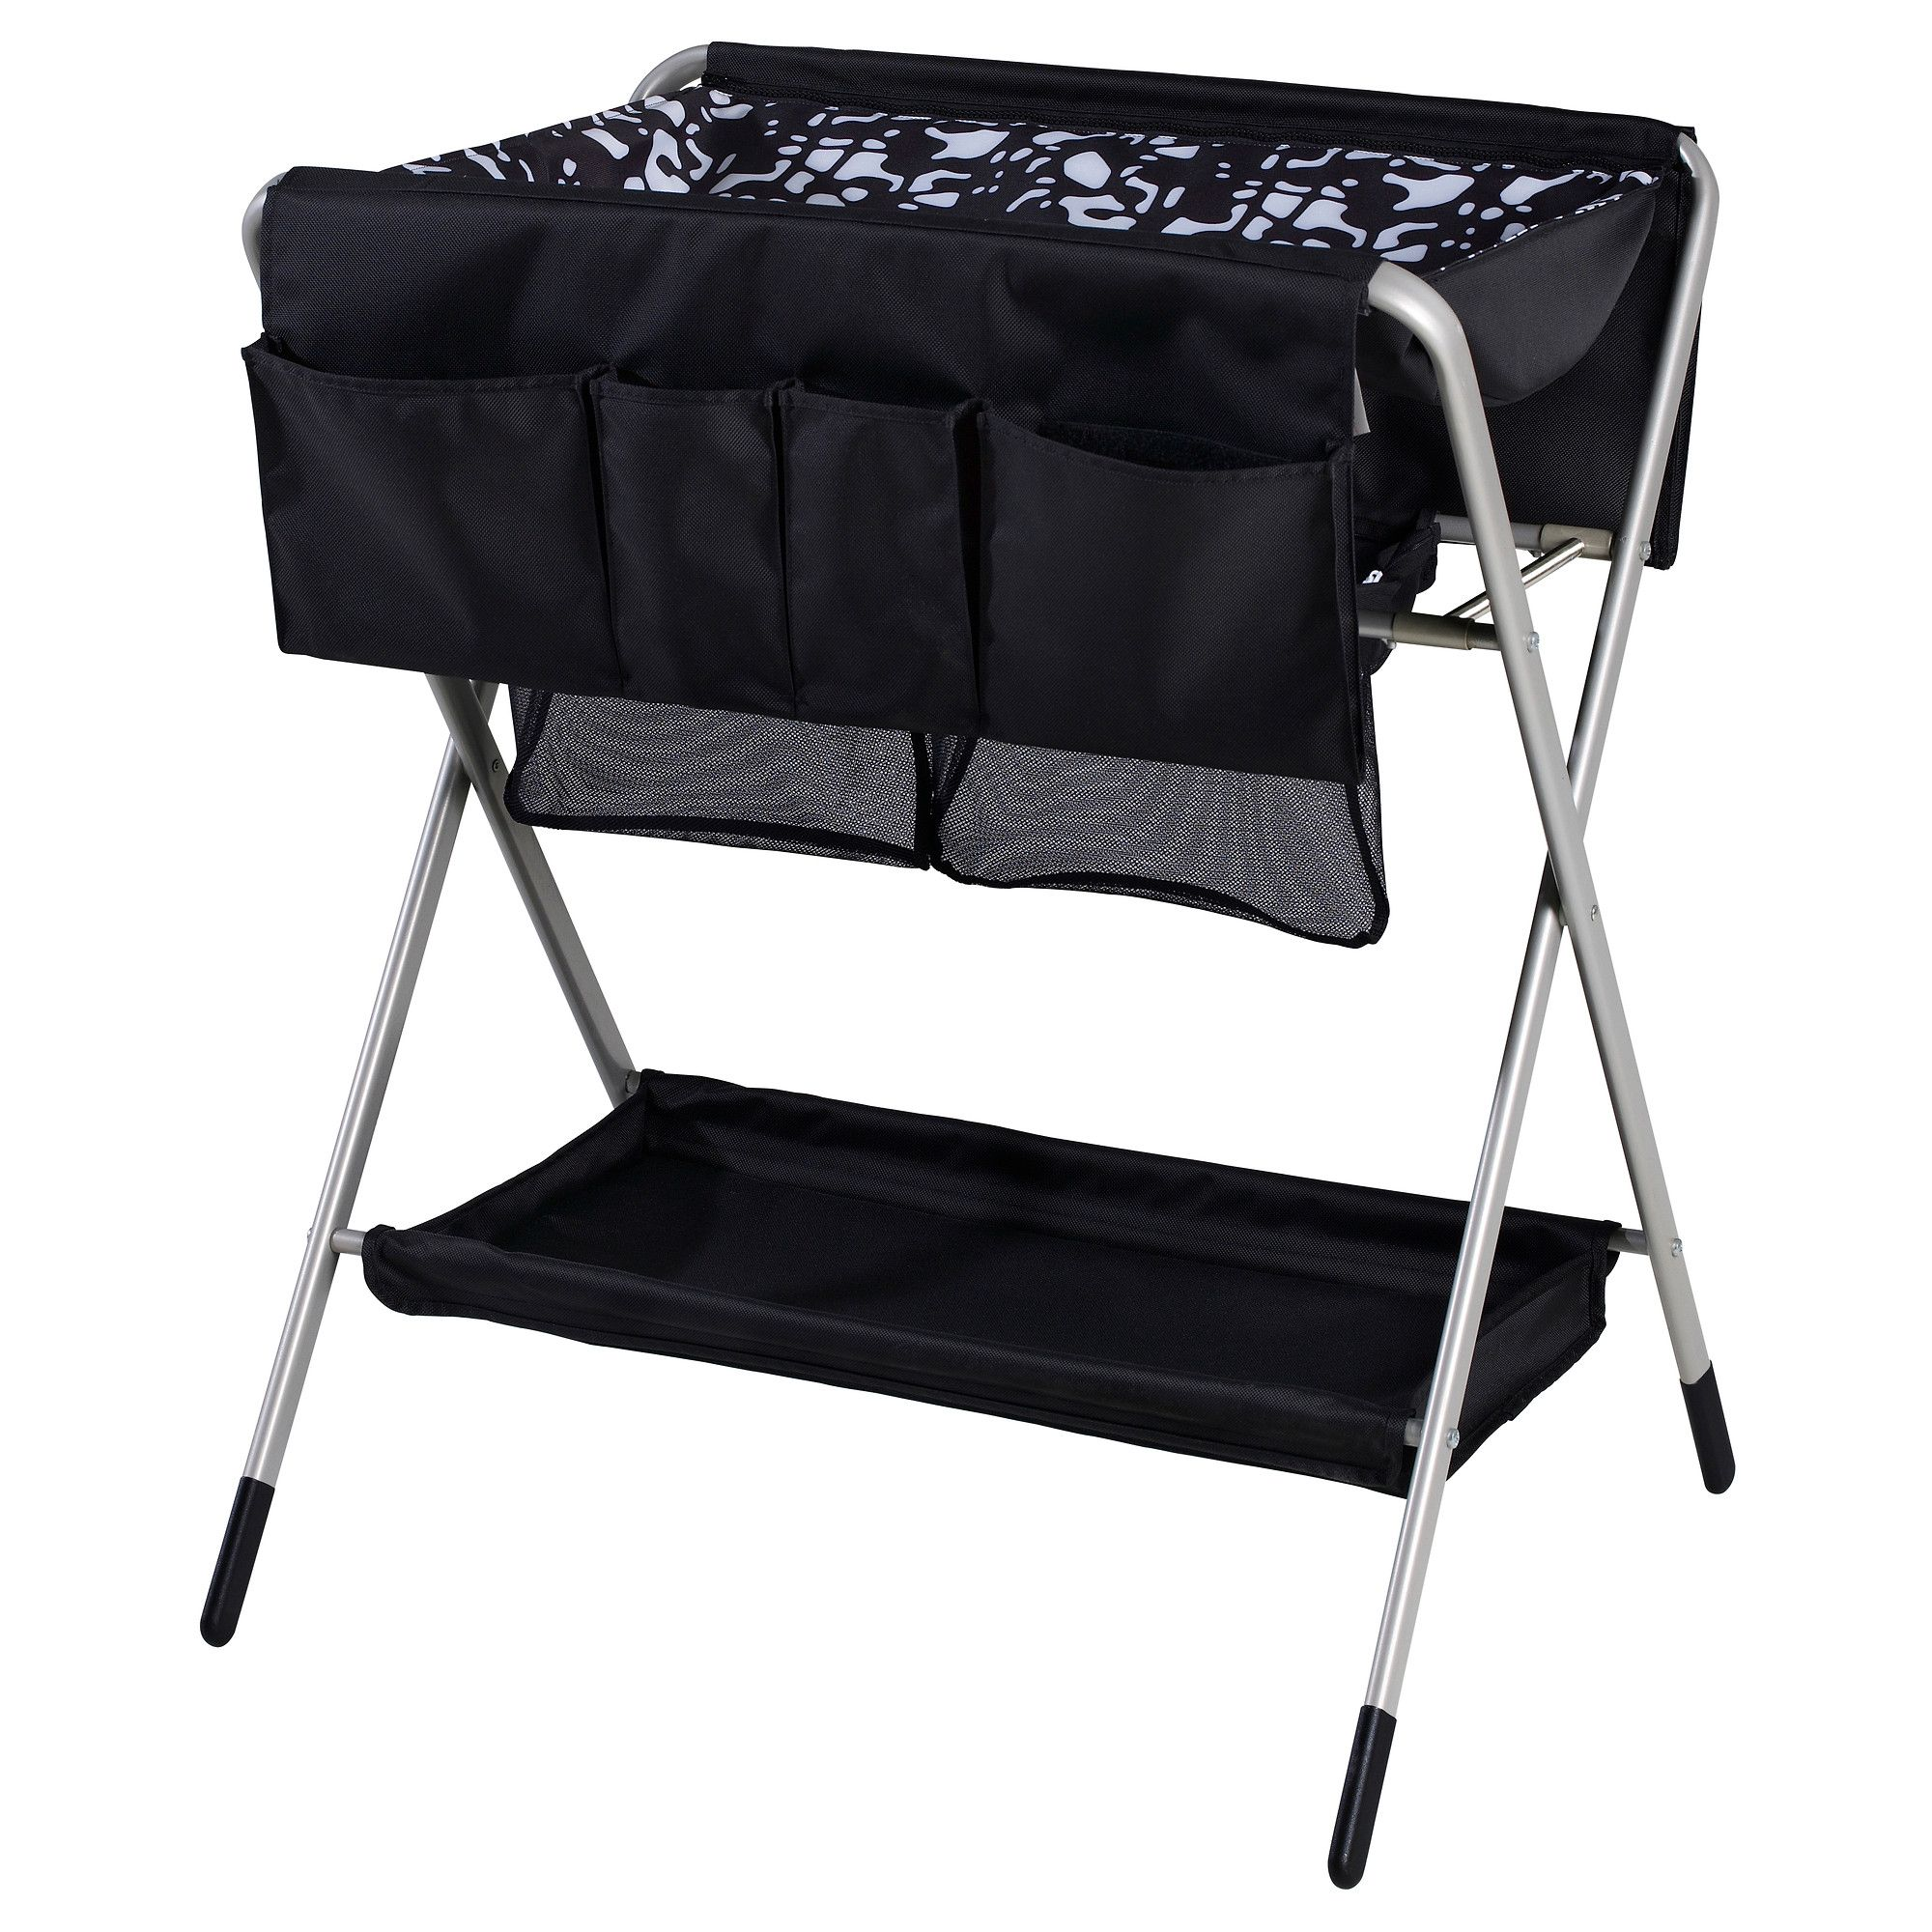 Ikea Us Furniture And Home Furnishings Diaper Changing Table Baby Changing Tables Folding Changing Table